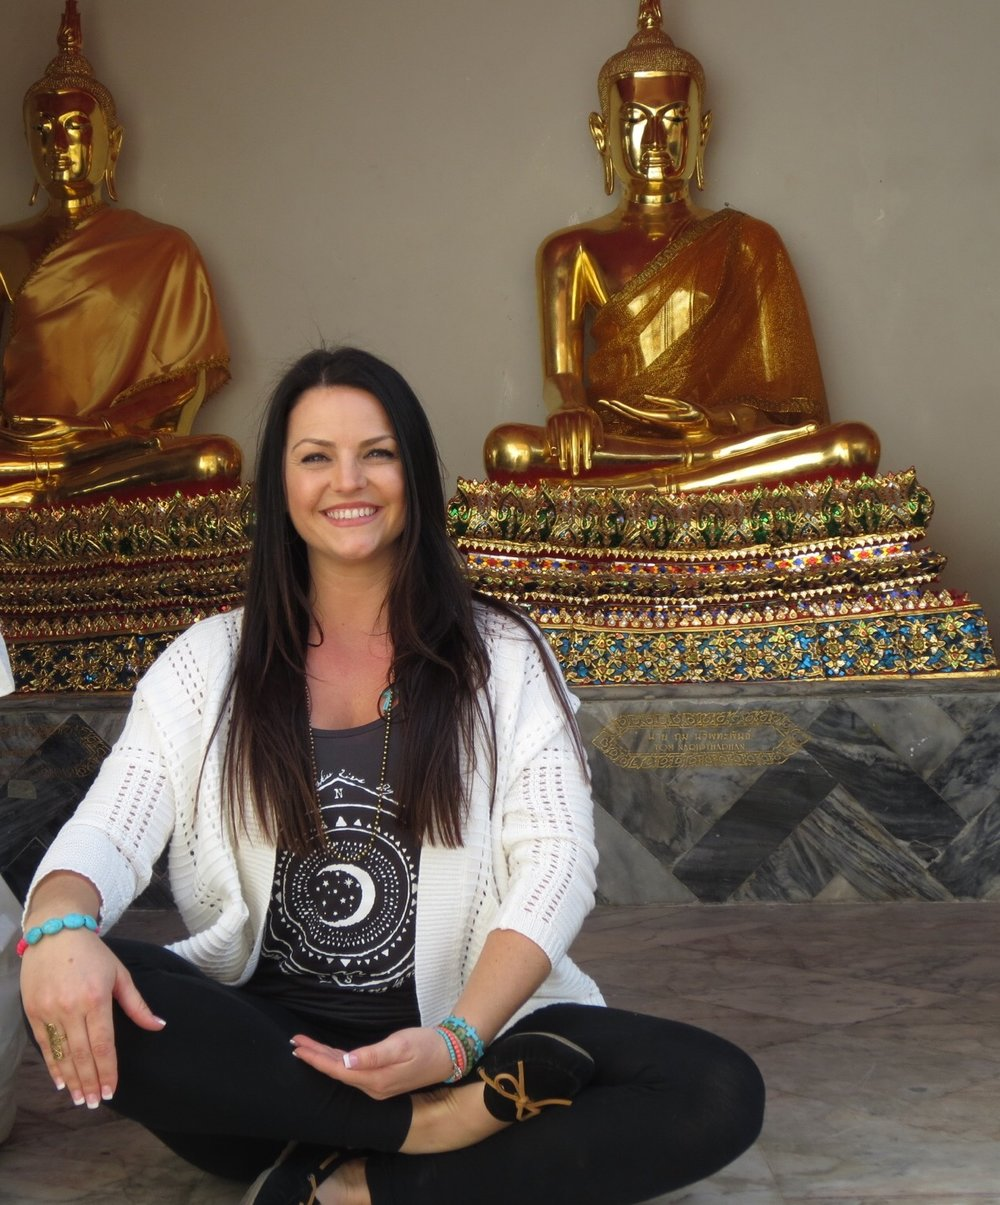 Jessica of Samsara Wellness Center in Bakersfield, California which offers yoga, massage therapy & tattoo services.